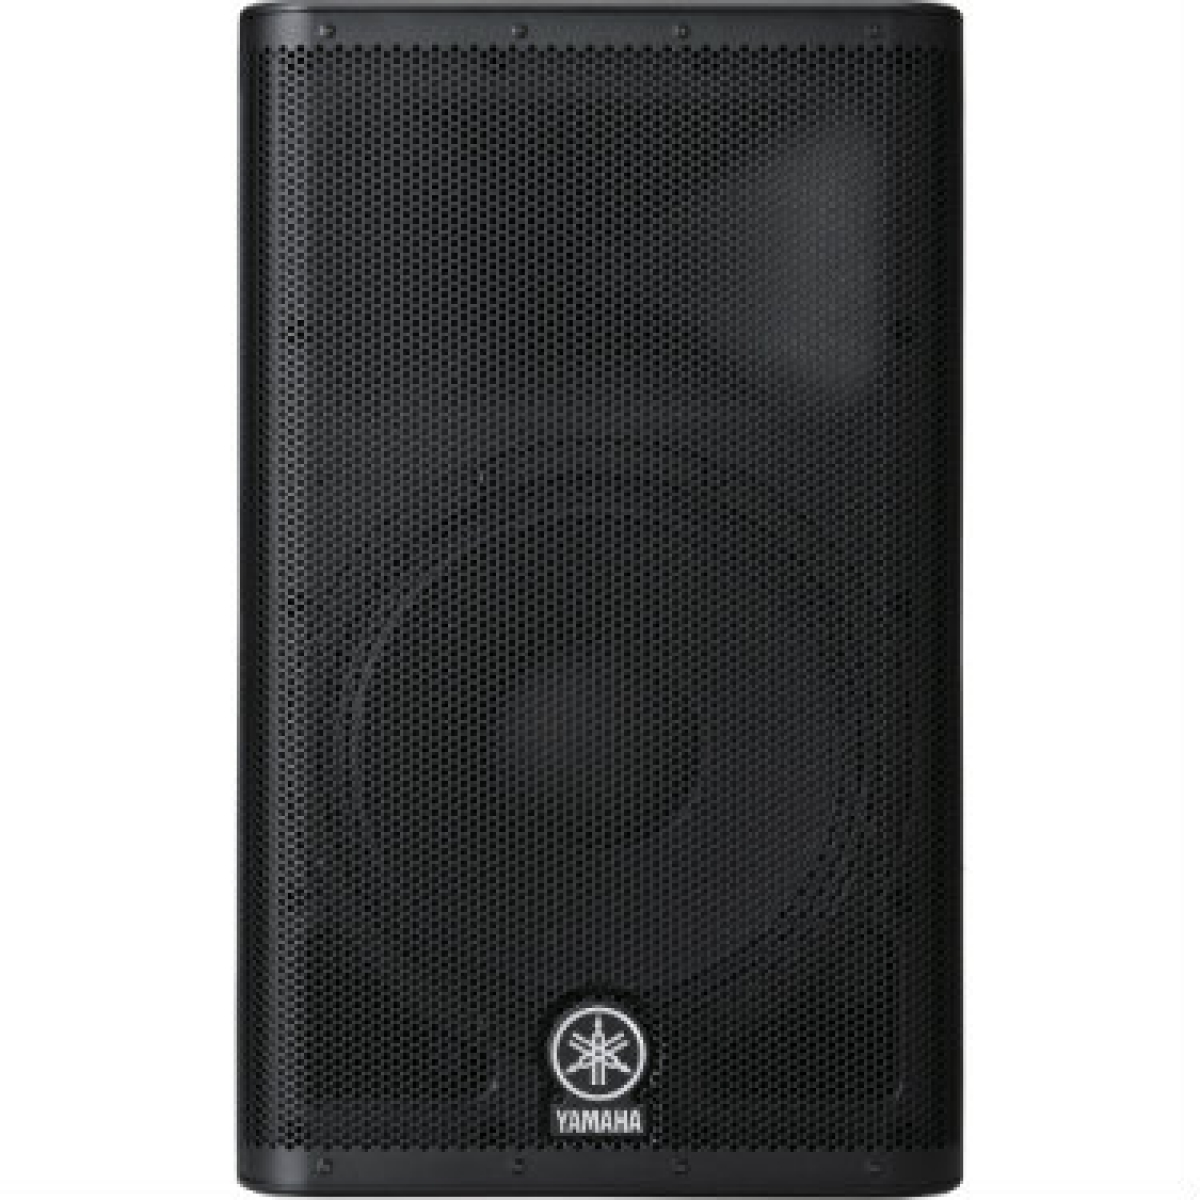 Yamaha DXR12 Active Speakers (PAIR) at Promenade Music